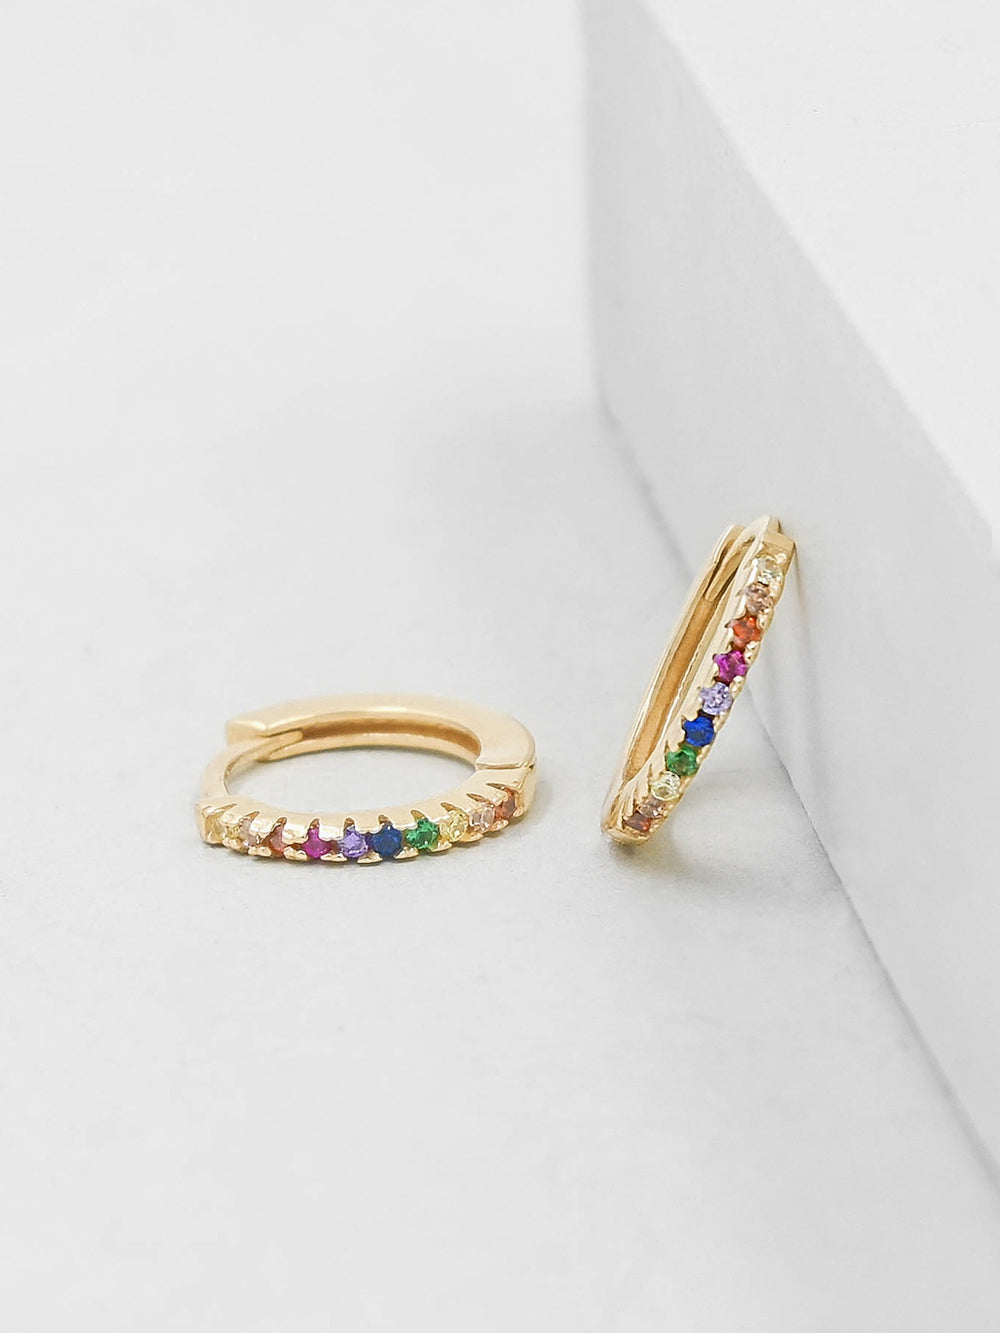 Gold Plated Super Dainty Hoop Huggie Earrings with Rainbow color Tiny Round Cubic Zirconia by The Faint Hearted Jewelry